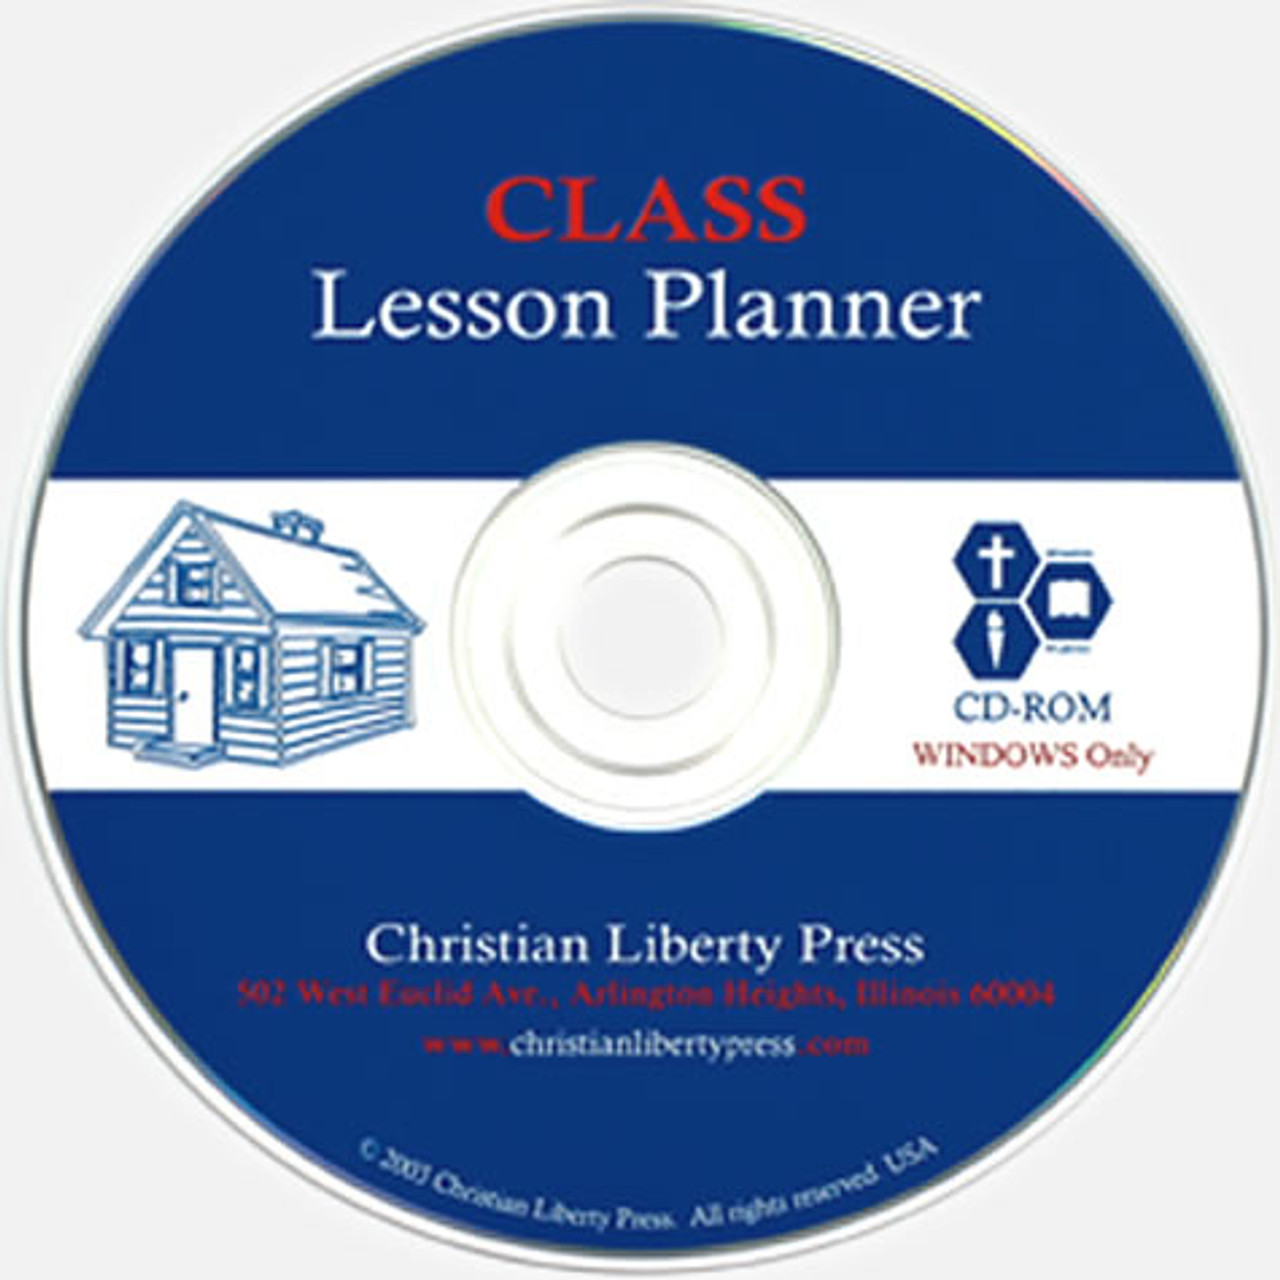 CLASS Lesson Planner - CD ROM Version